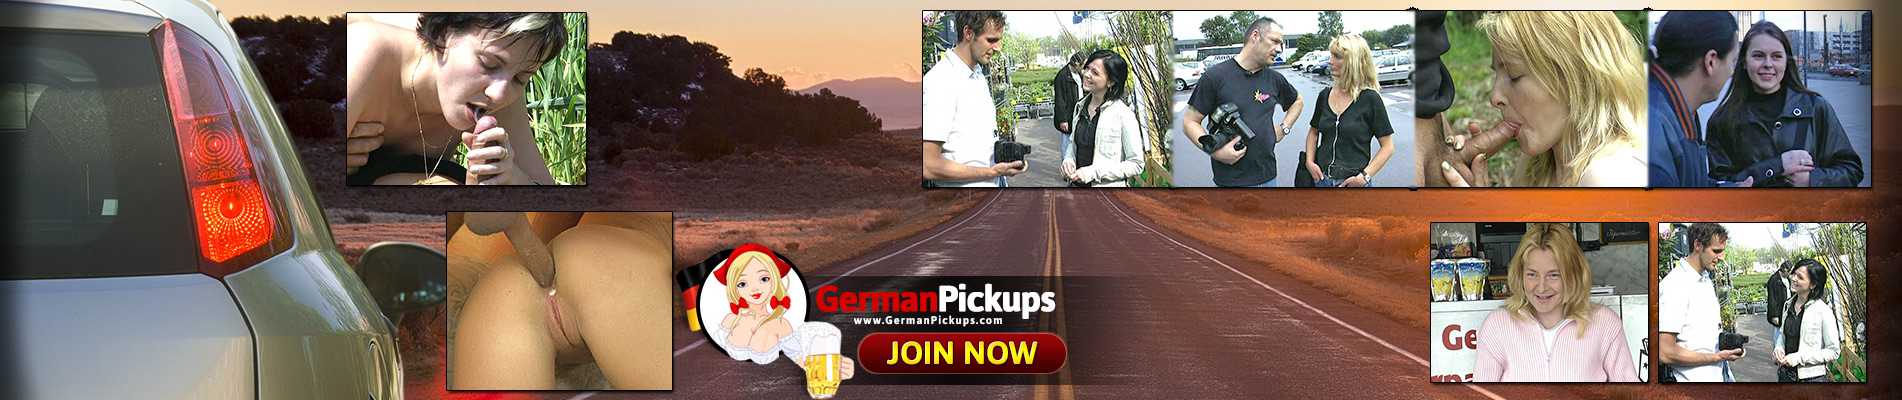 Germanpickups.com